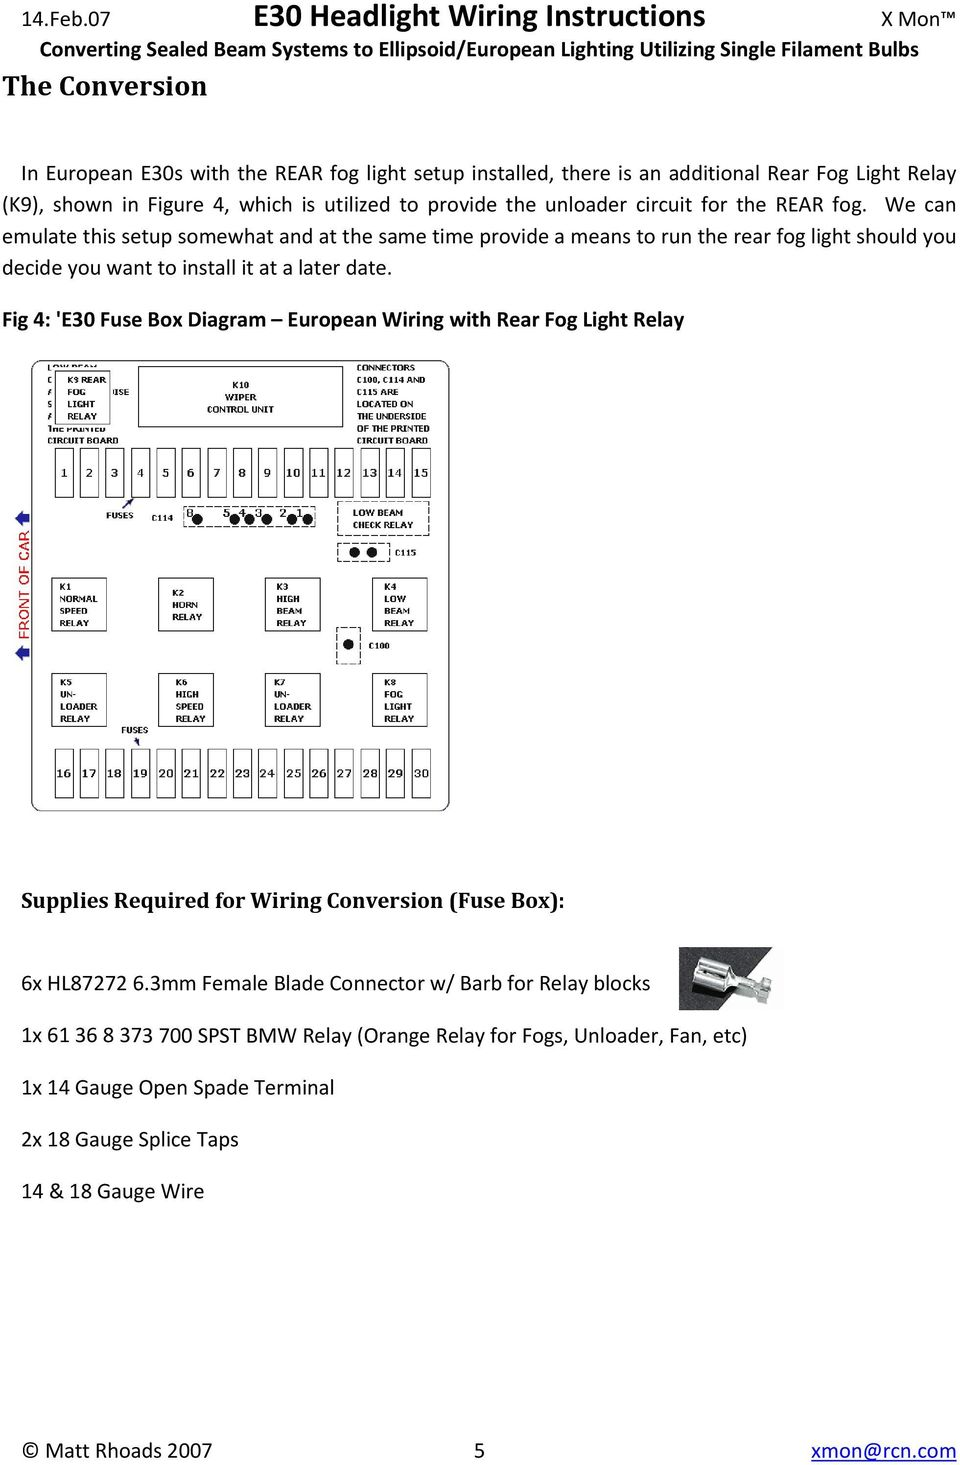 E30 Headlight Wiring Instructions Converting Sealed Beam Systems To 1994 Honda Accord Headlights Relay Fig 4 Fuse Box Diagram European With Rear Fog Light Supplies